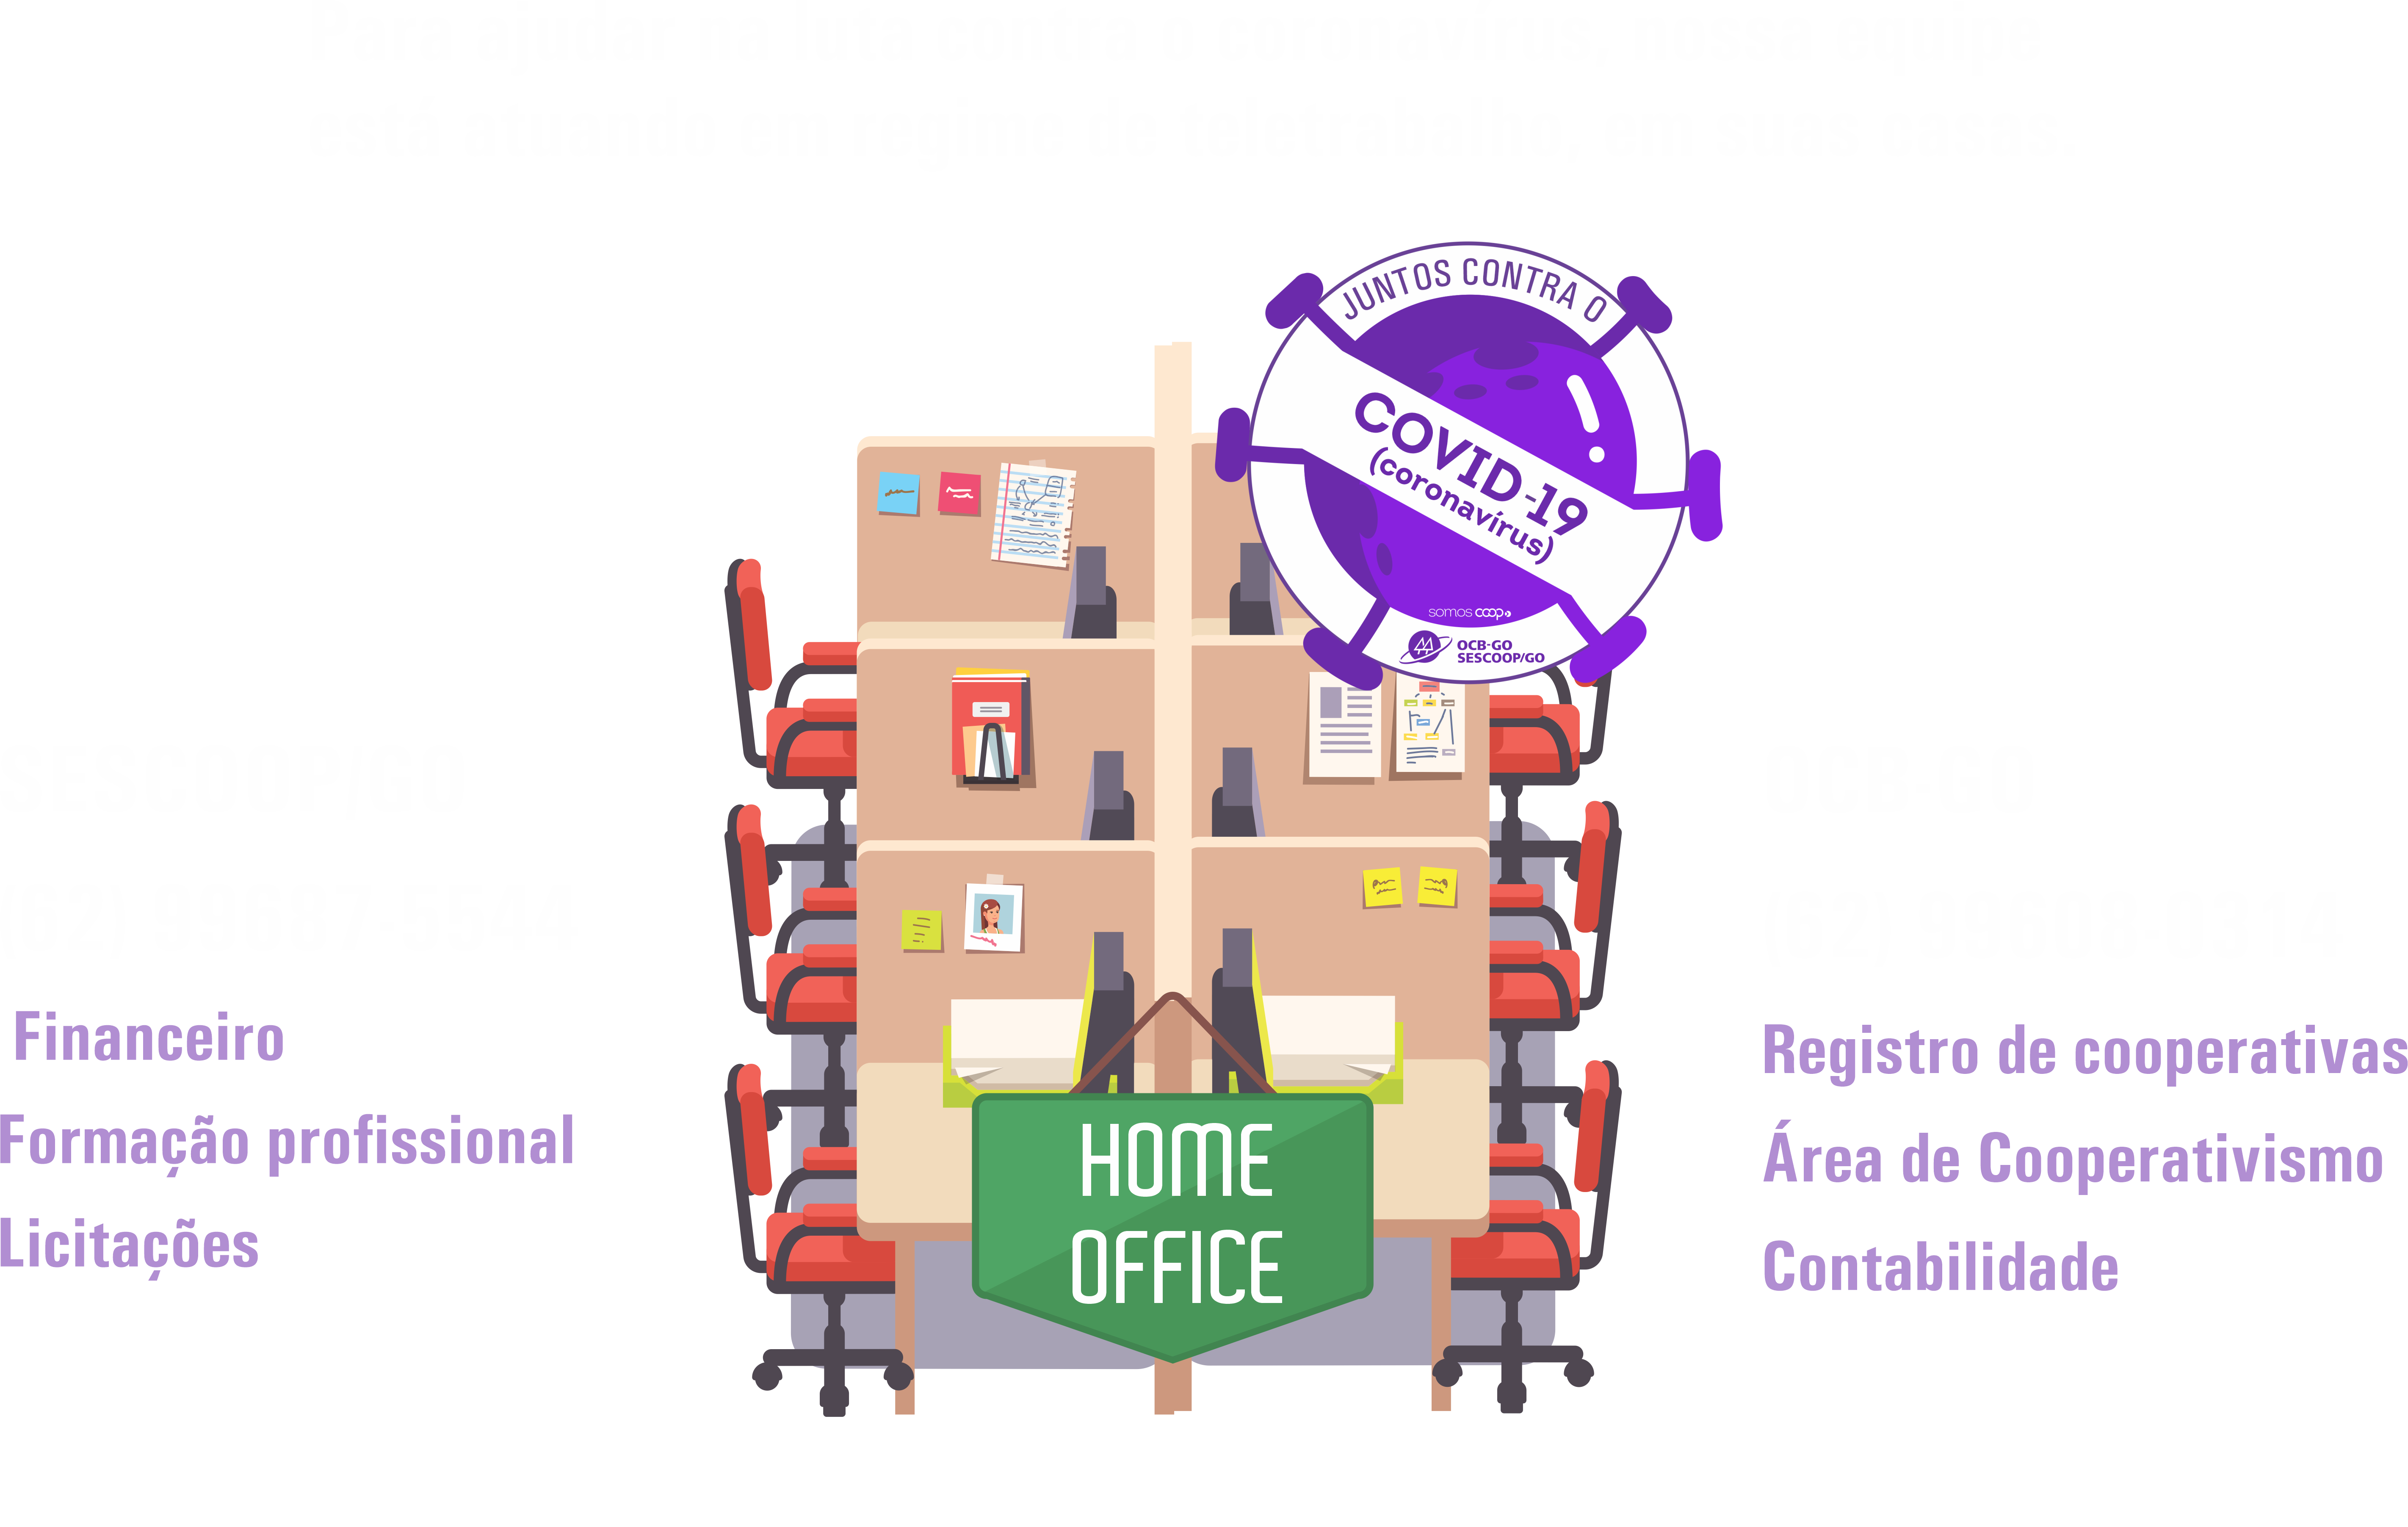 homeoffice-popup-1710151112.png